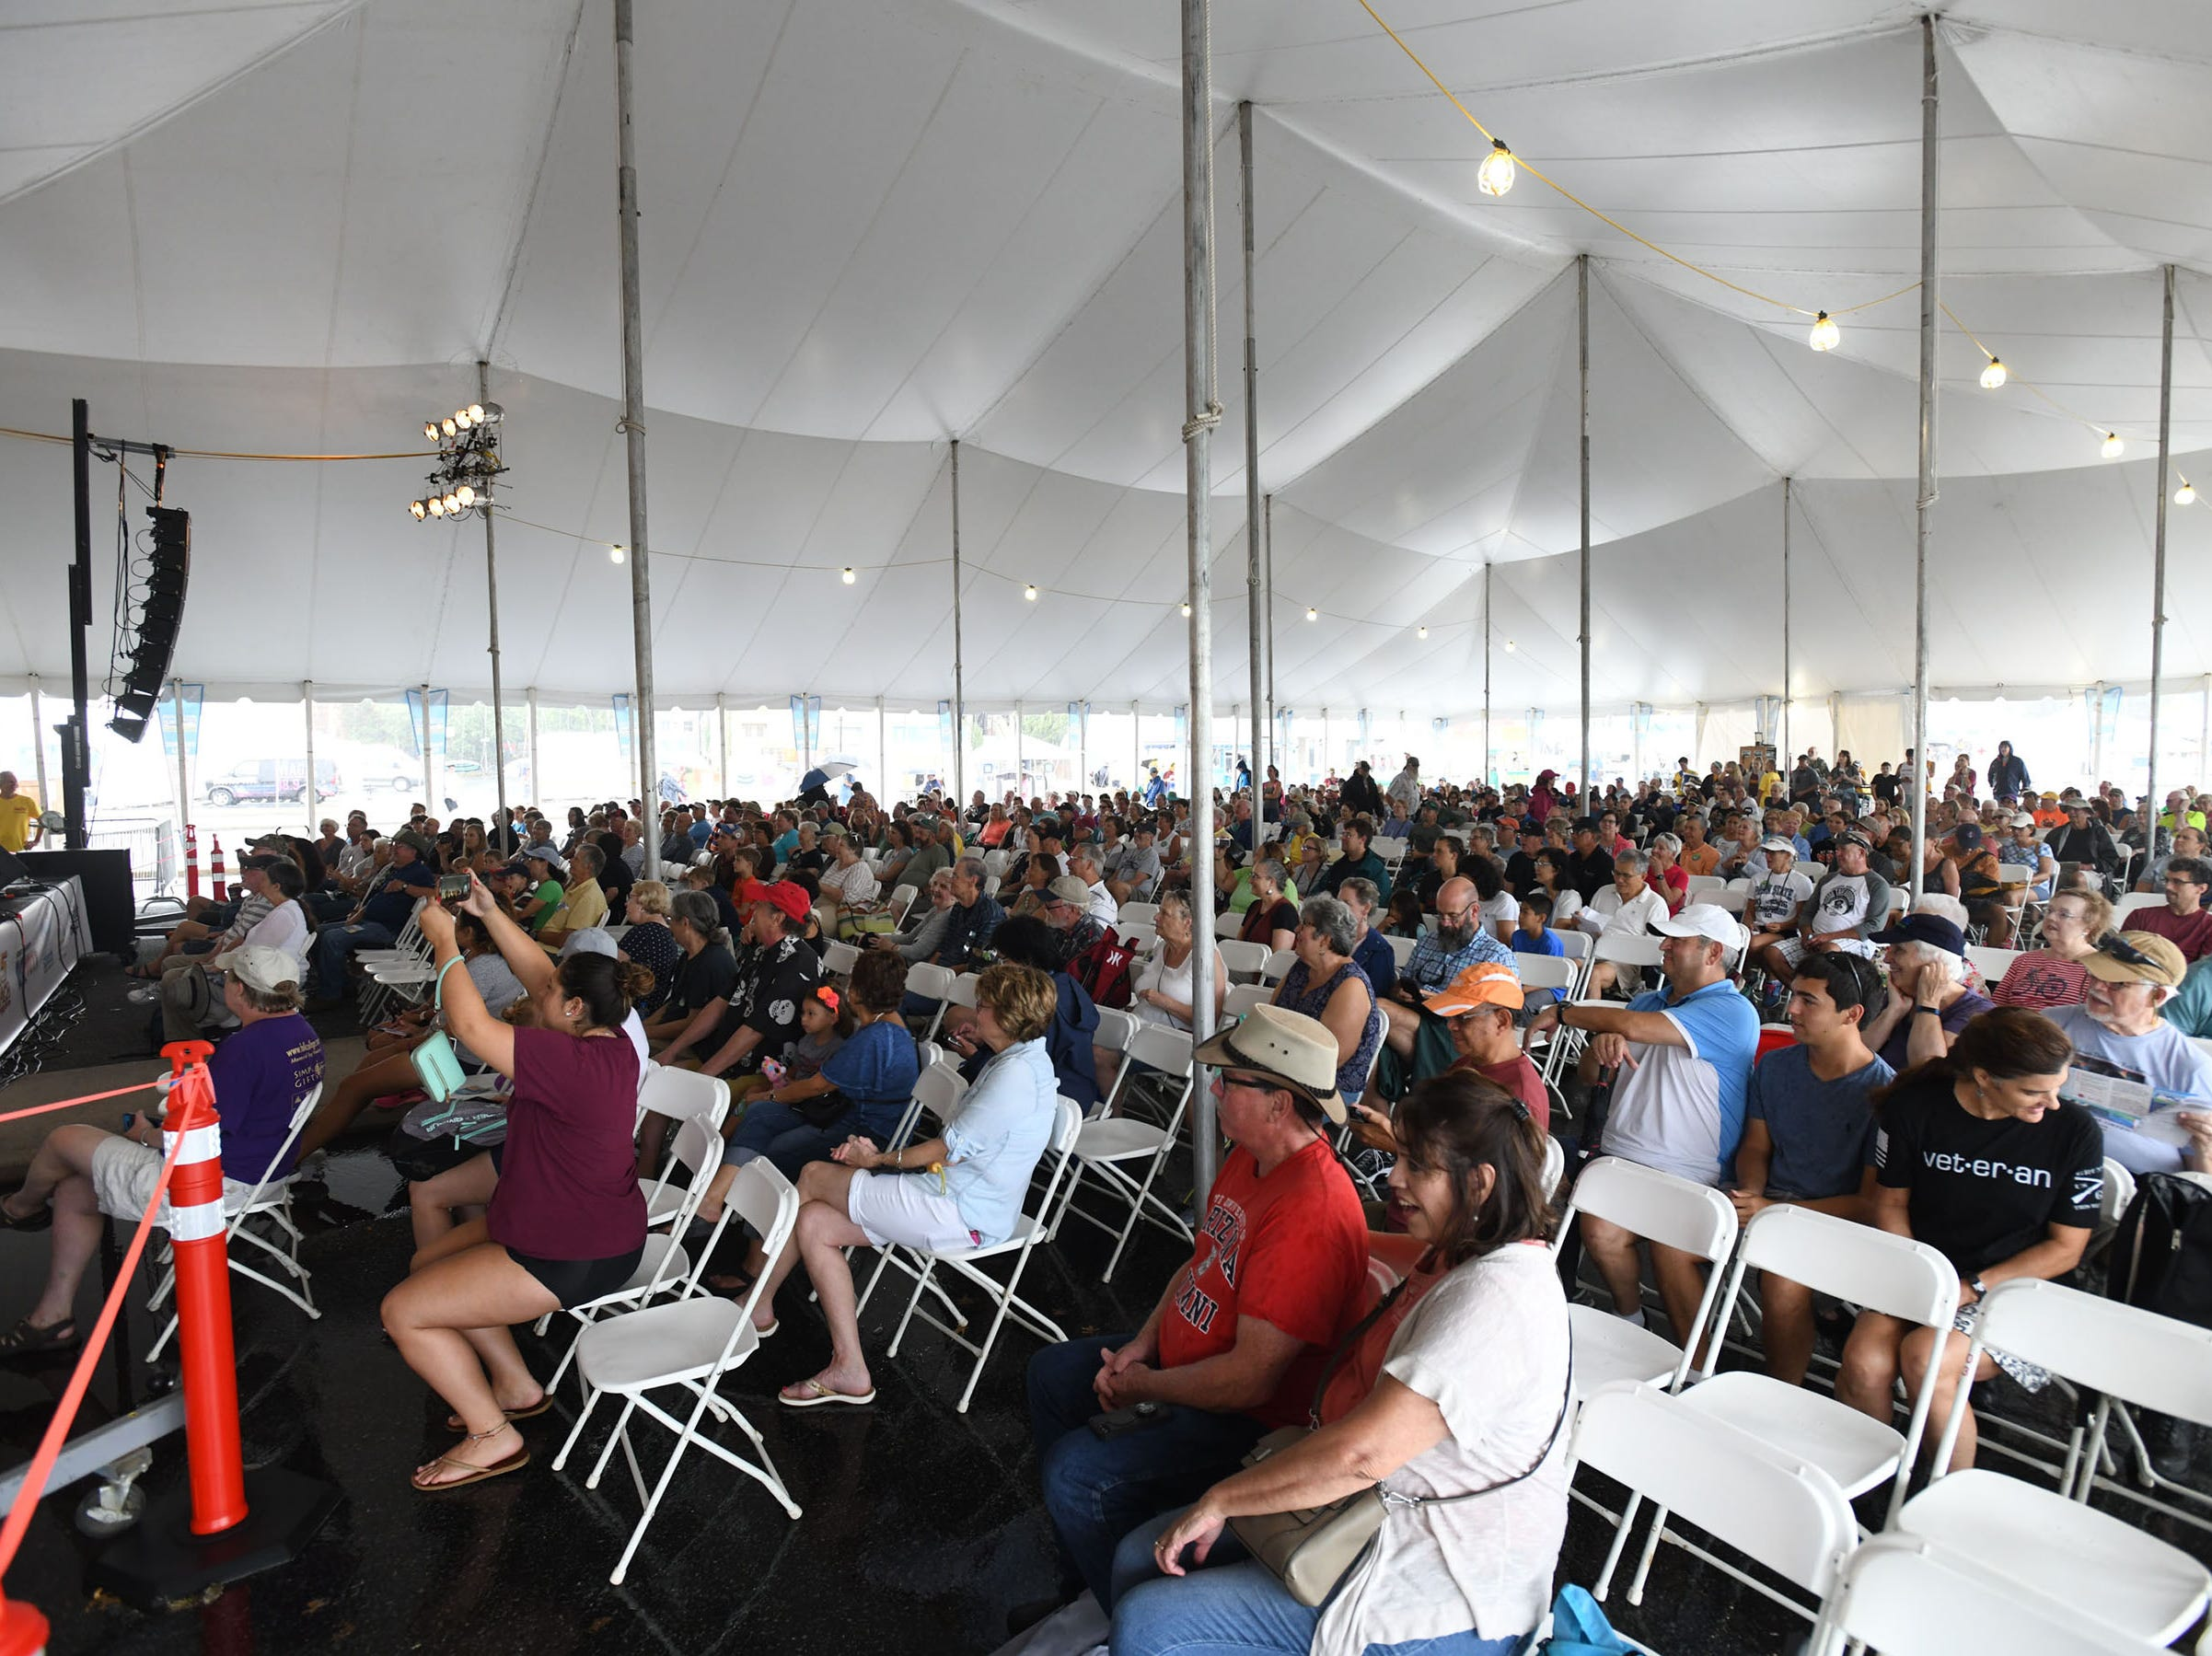 The PRMC tent is packed during the 78th National Folk Festival on Saturday, Sept. 8, 2018 in Salisbury, Md.